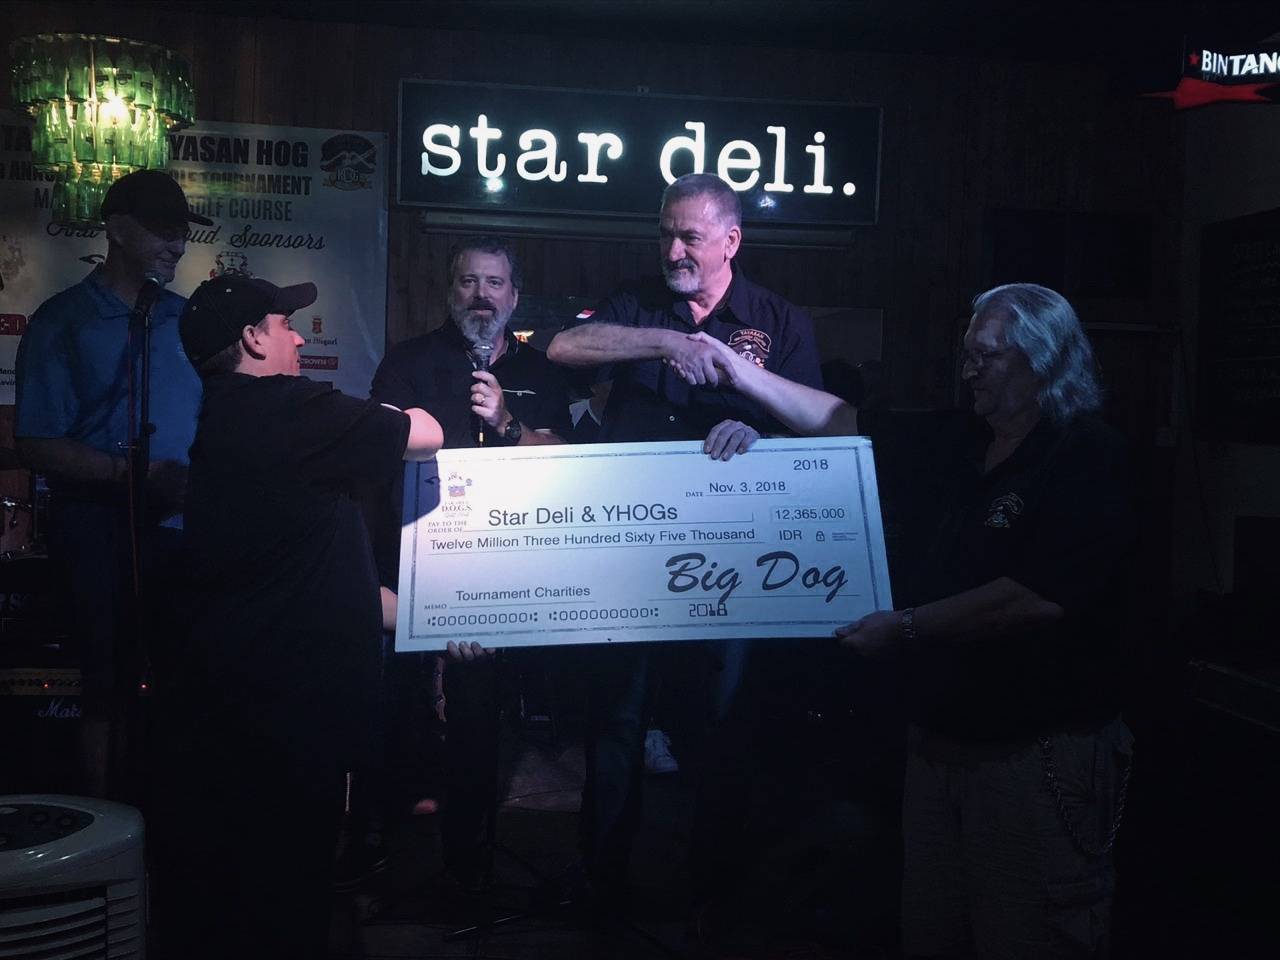 DOGS donation 2018 Star Deli Tournament.